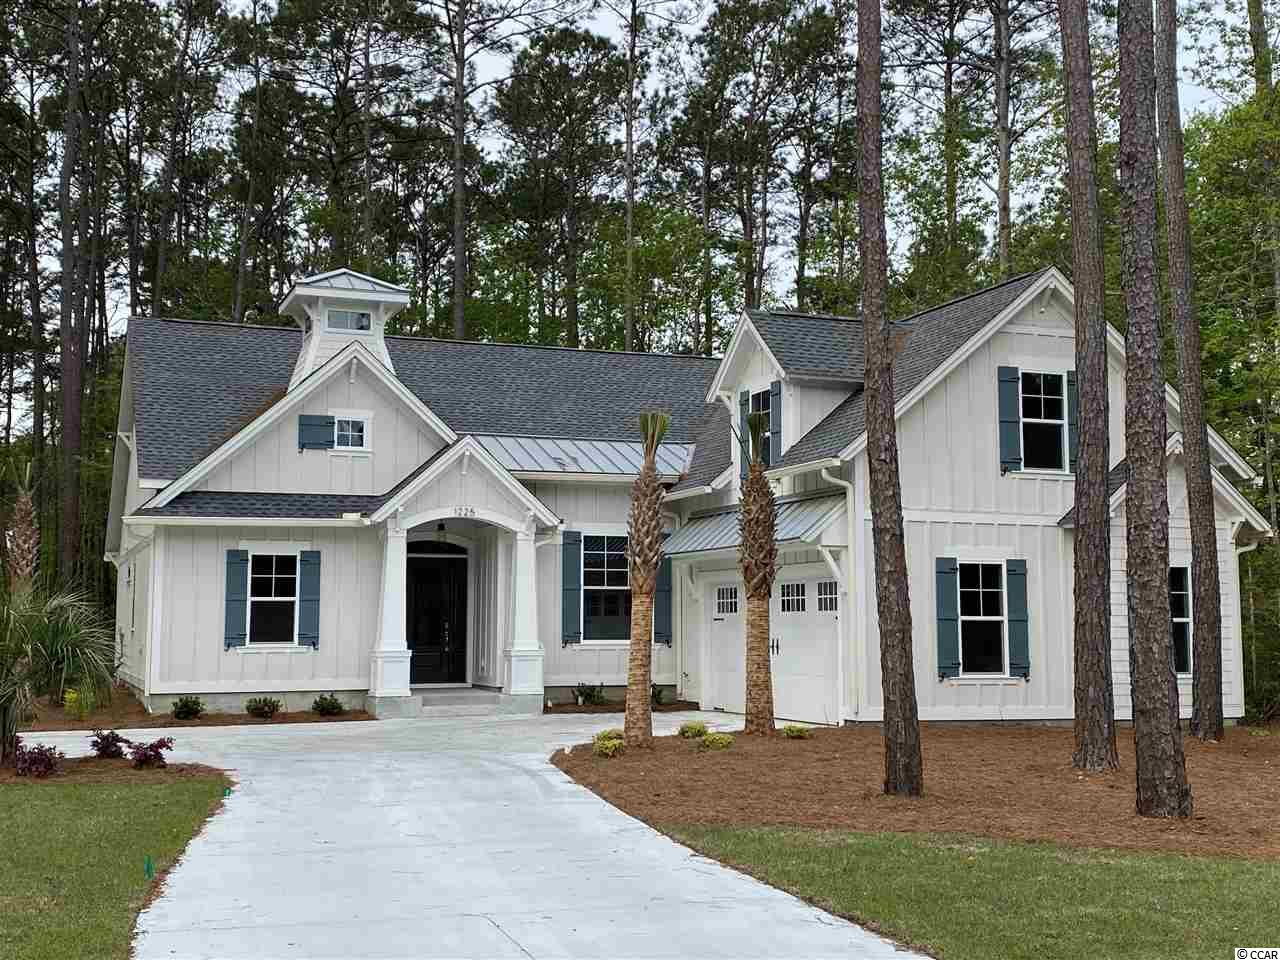 Welcome to BEAUMONT PARK in Pawleys Island!  New development just minutes from the beach, restaurants, grocery stores and more. One acre home site with NO HOA. Nations Homes is the custom builder. This home is under construction and to be an estimated 2576 heated square foot home. Contemporary craftsman style 4 bedroom, 4 bath home with Hardie plank, shake, board & batten siding along with brick accenting exterior.  Two car attached garage. A bonus room is the 4th  bedroom and has its own bath and walk in closet plus additional attic storage. A beautiful 16 x 12 covered veranda to enjoy your morning coffee or afternoon cocktail with friends. Covered veranda can be screened. This is an optional upgrade. An open floor plan with a large great room, dining and breakfast nook. 14 x 19 Master suite and master bath with double vanities, tub,  tile shower and walk in closet. Beautiful interior with crown molding, tile floors throughout main living area, granite counter tops, and custom cabinets. Come see this beautiful home and start living the Pawleys Island lifestyle! Pictures are of model home in another community. Some features may vary. Home to be completed October 2019. Disclaimer: Storm water plan may change to gain use of undisturbed area at the back of each lot.